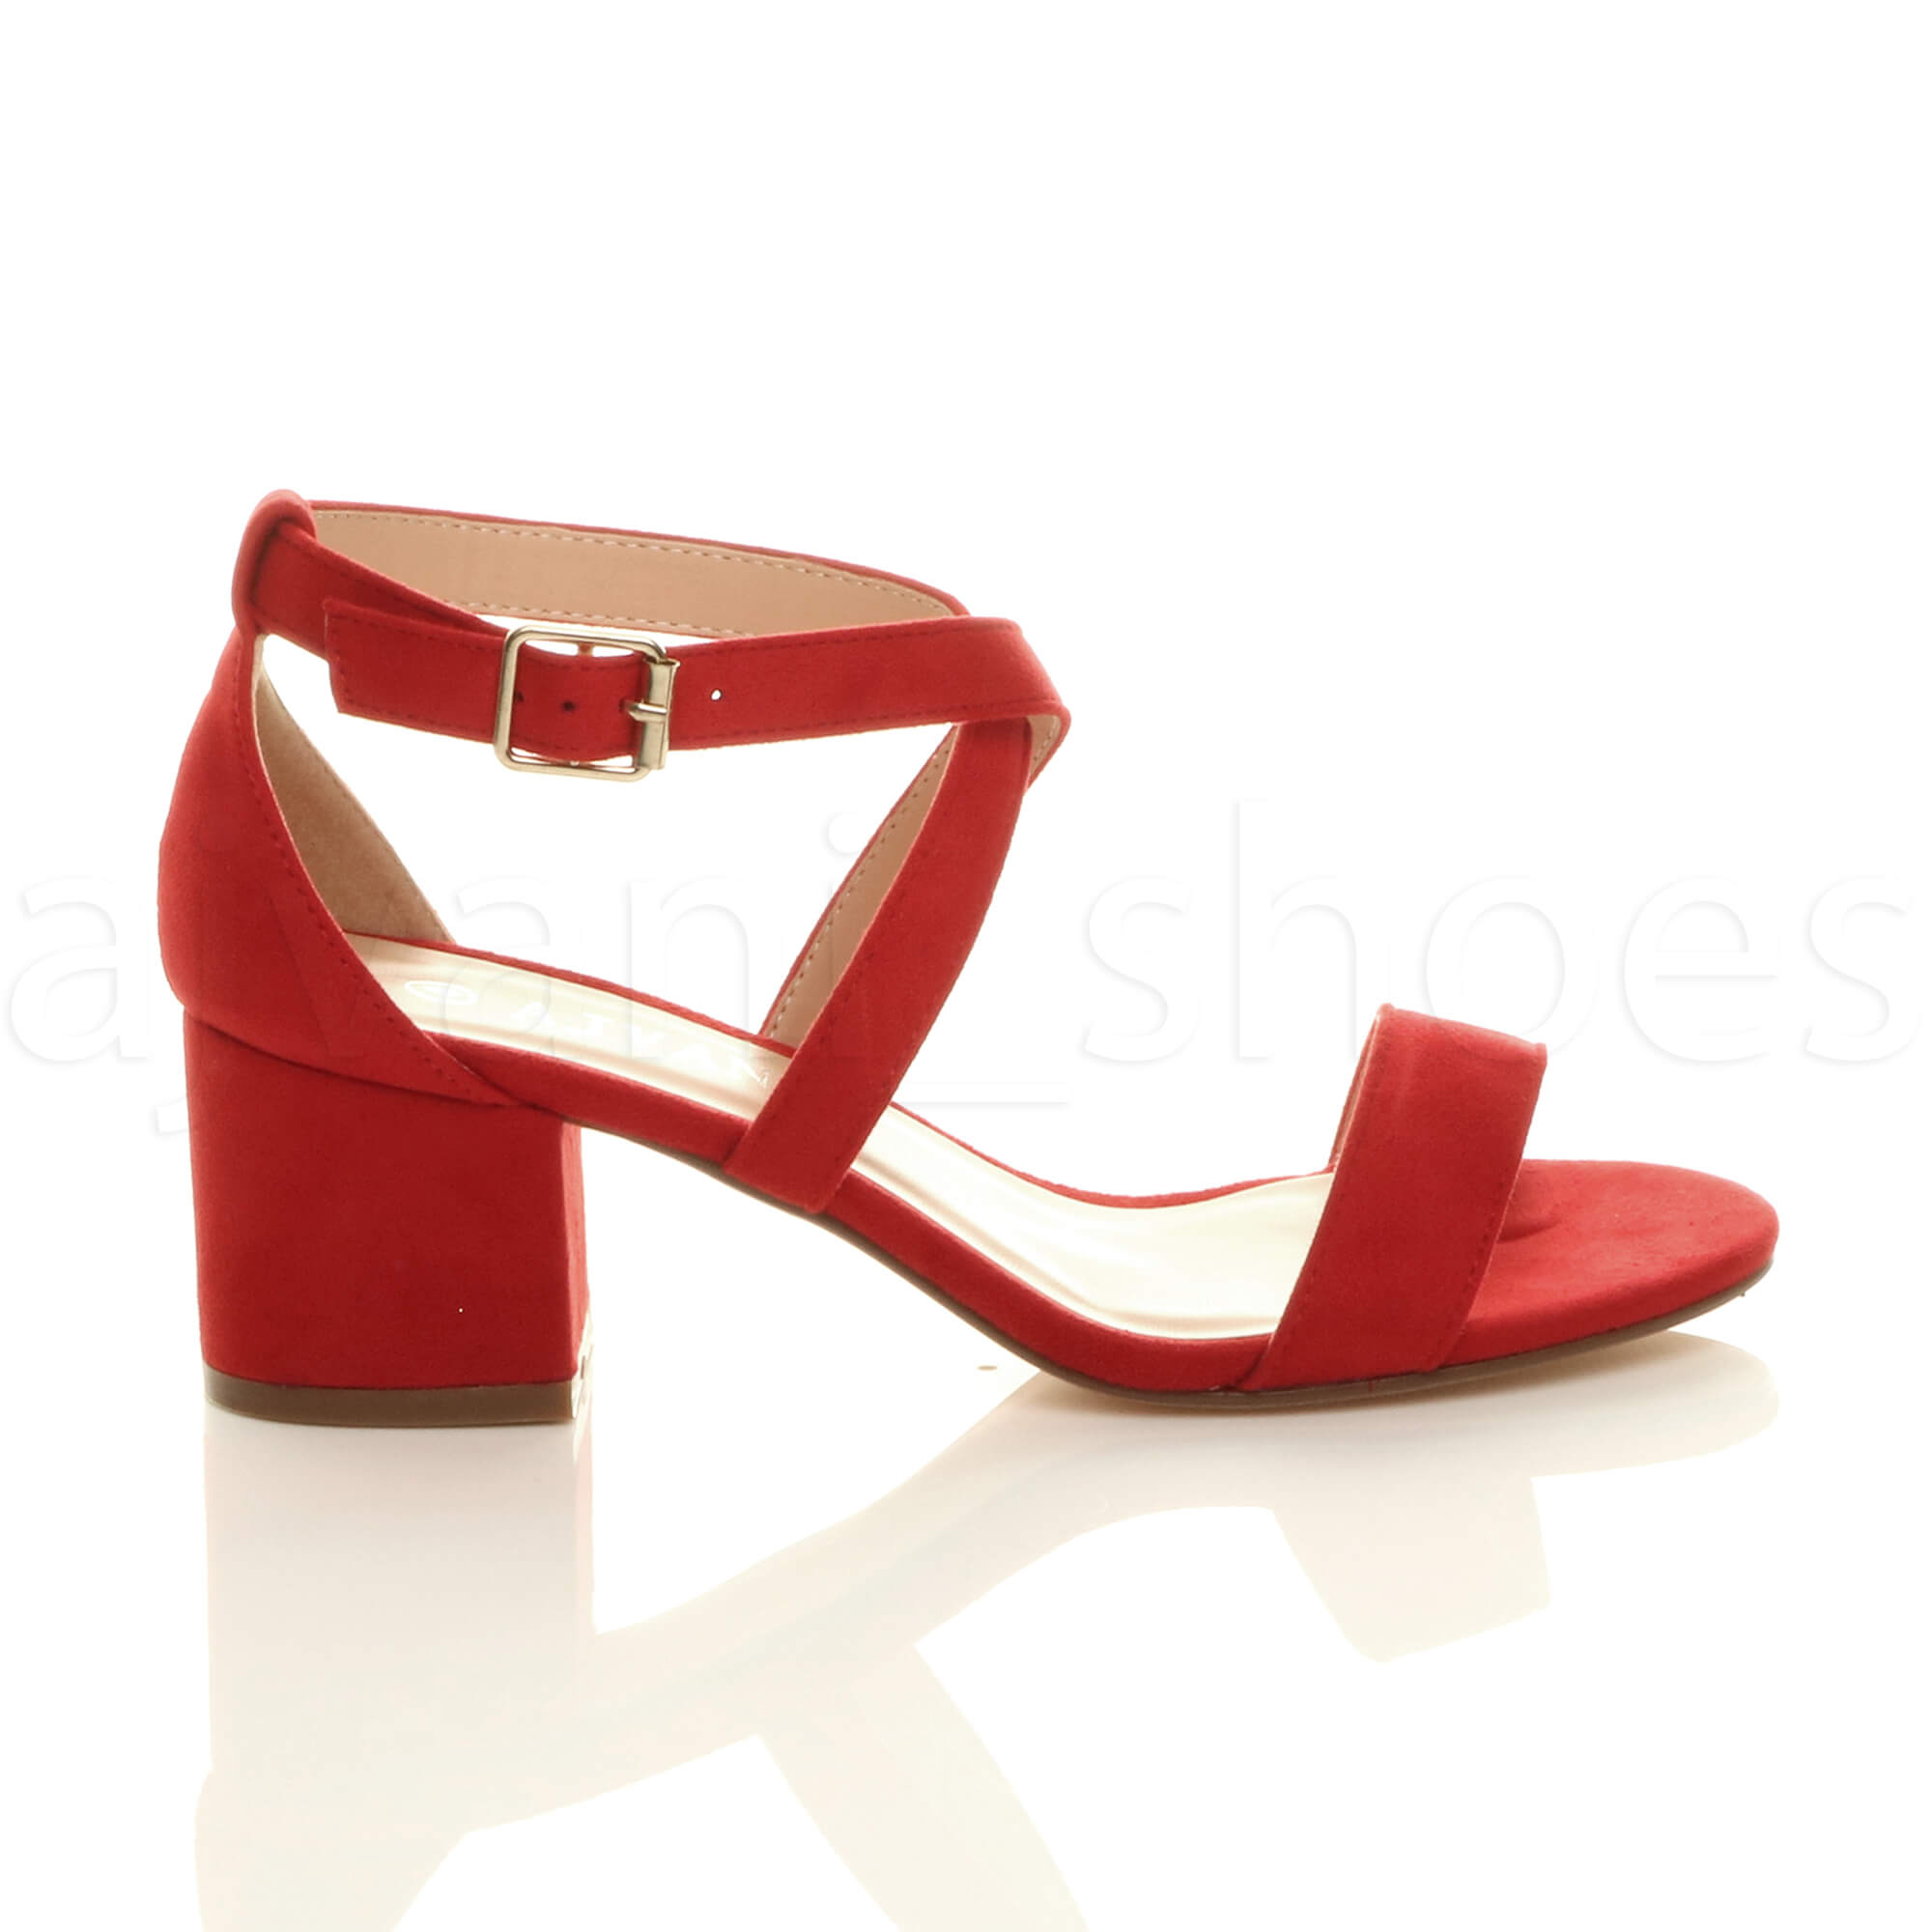 WOMENS-LADIES-MID-LOW-BLOCK-HEEL-CROSS-STRAPS-PARTY-STRAPPY-SANDALS-SHOES-SIZE thumbnail 62